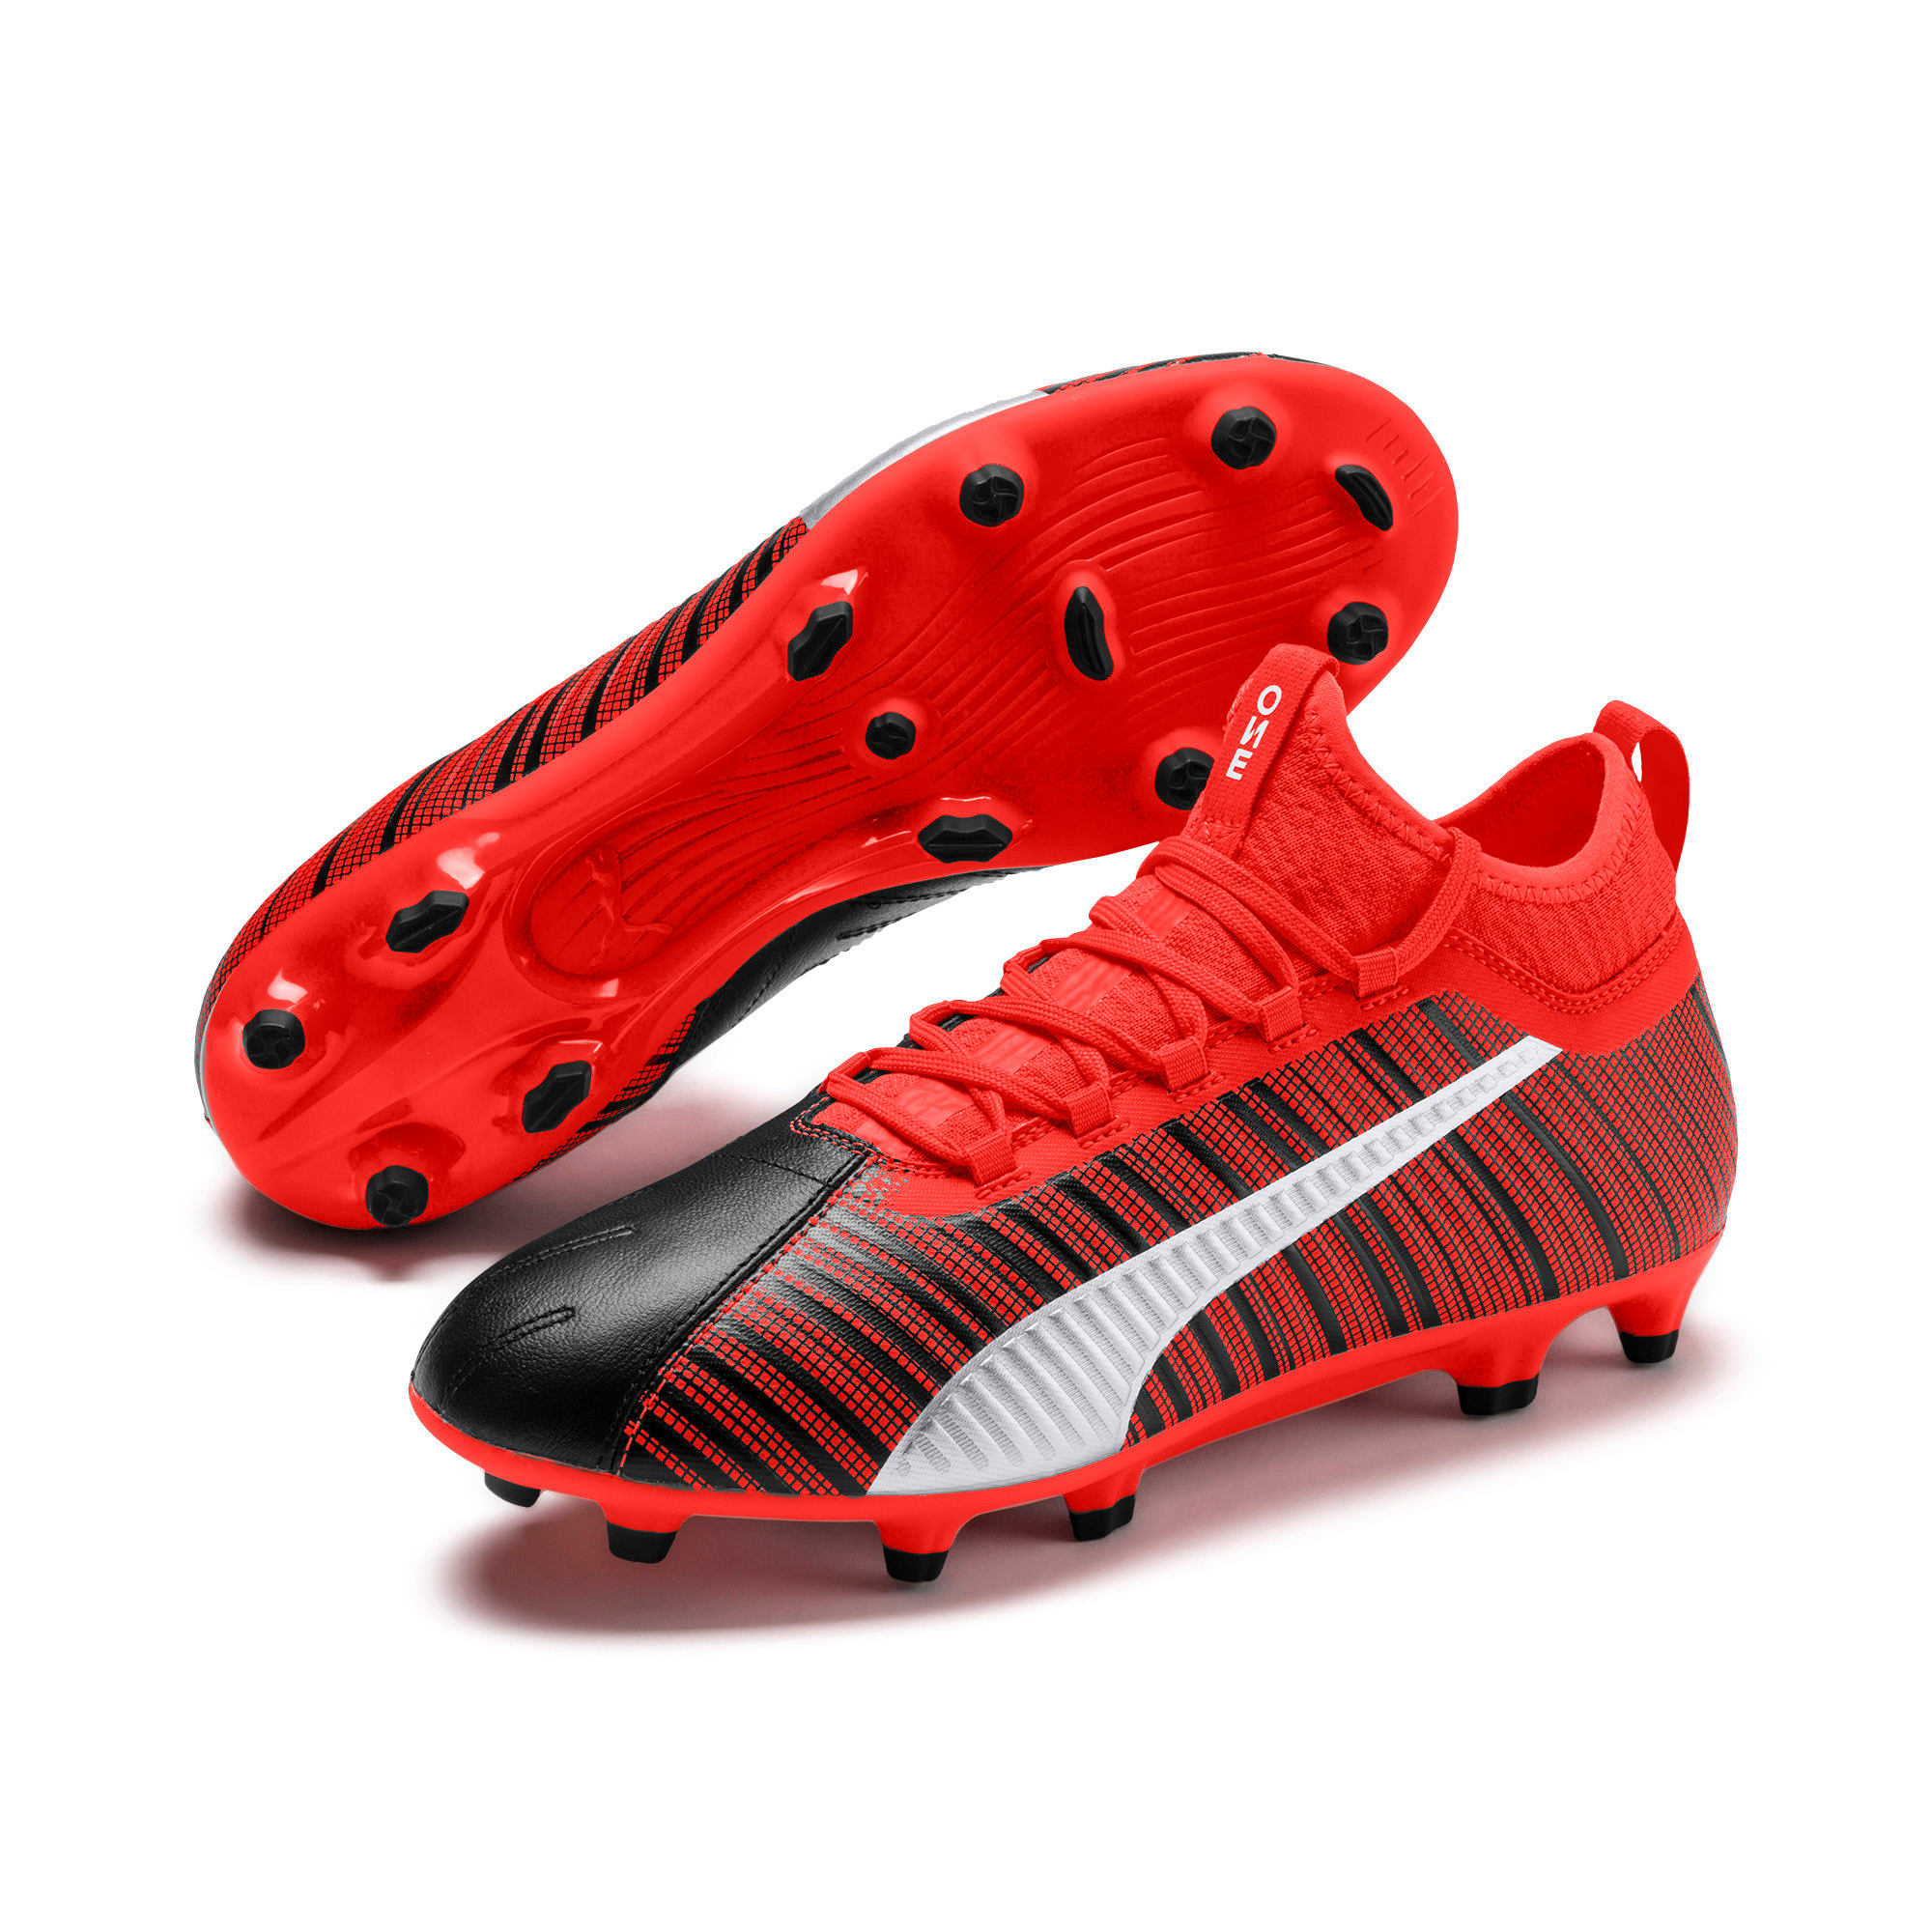 Thumbnail 3 of PUMA ONE 5.3 FG/AG Men's Football Boots, Black-Nrgy Red-Aged Silver, medium-IND